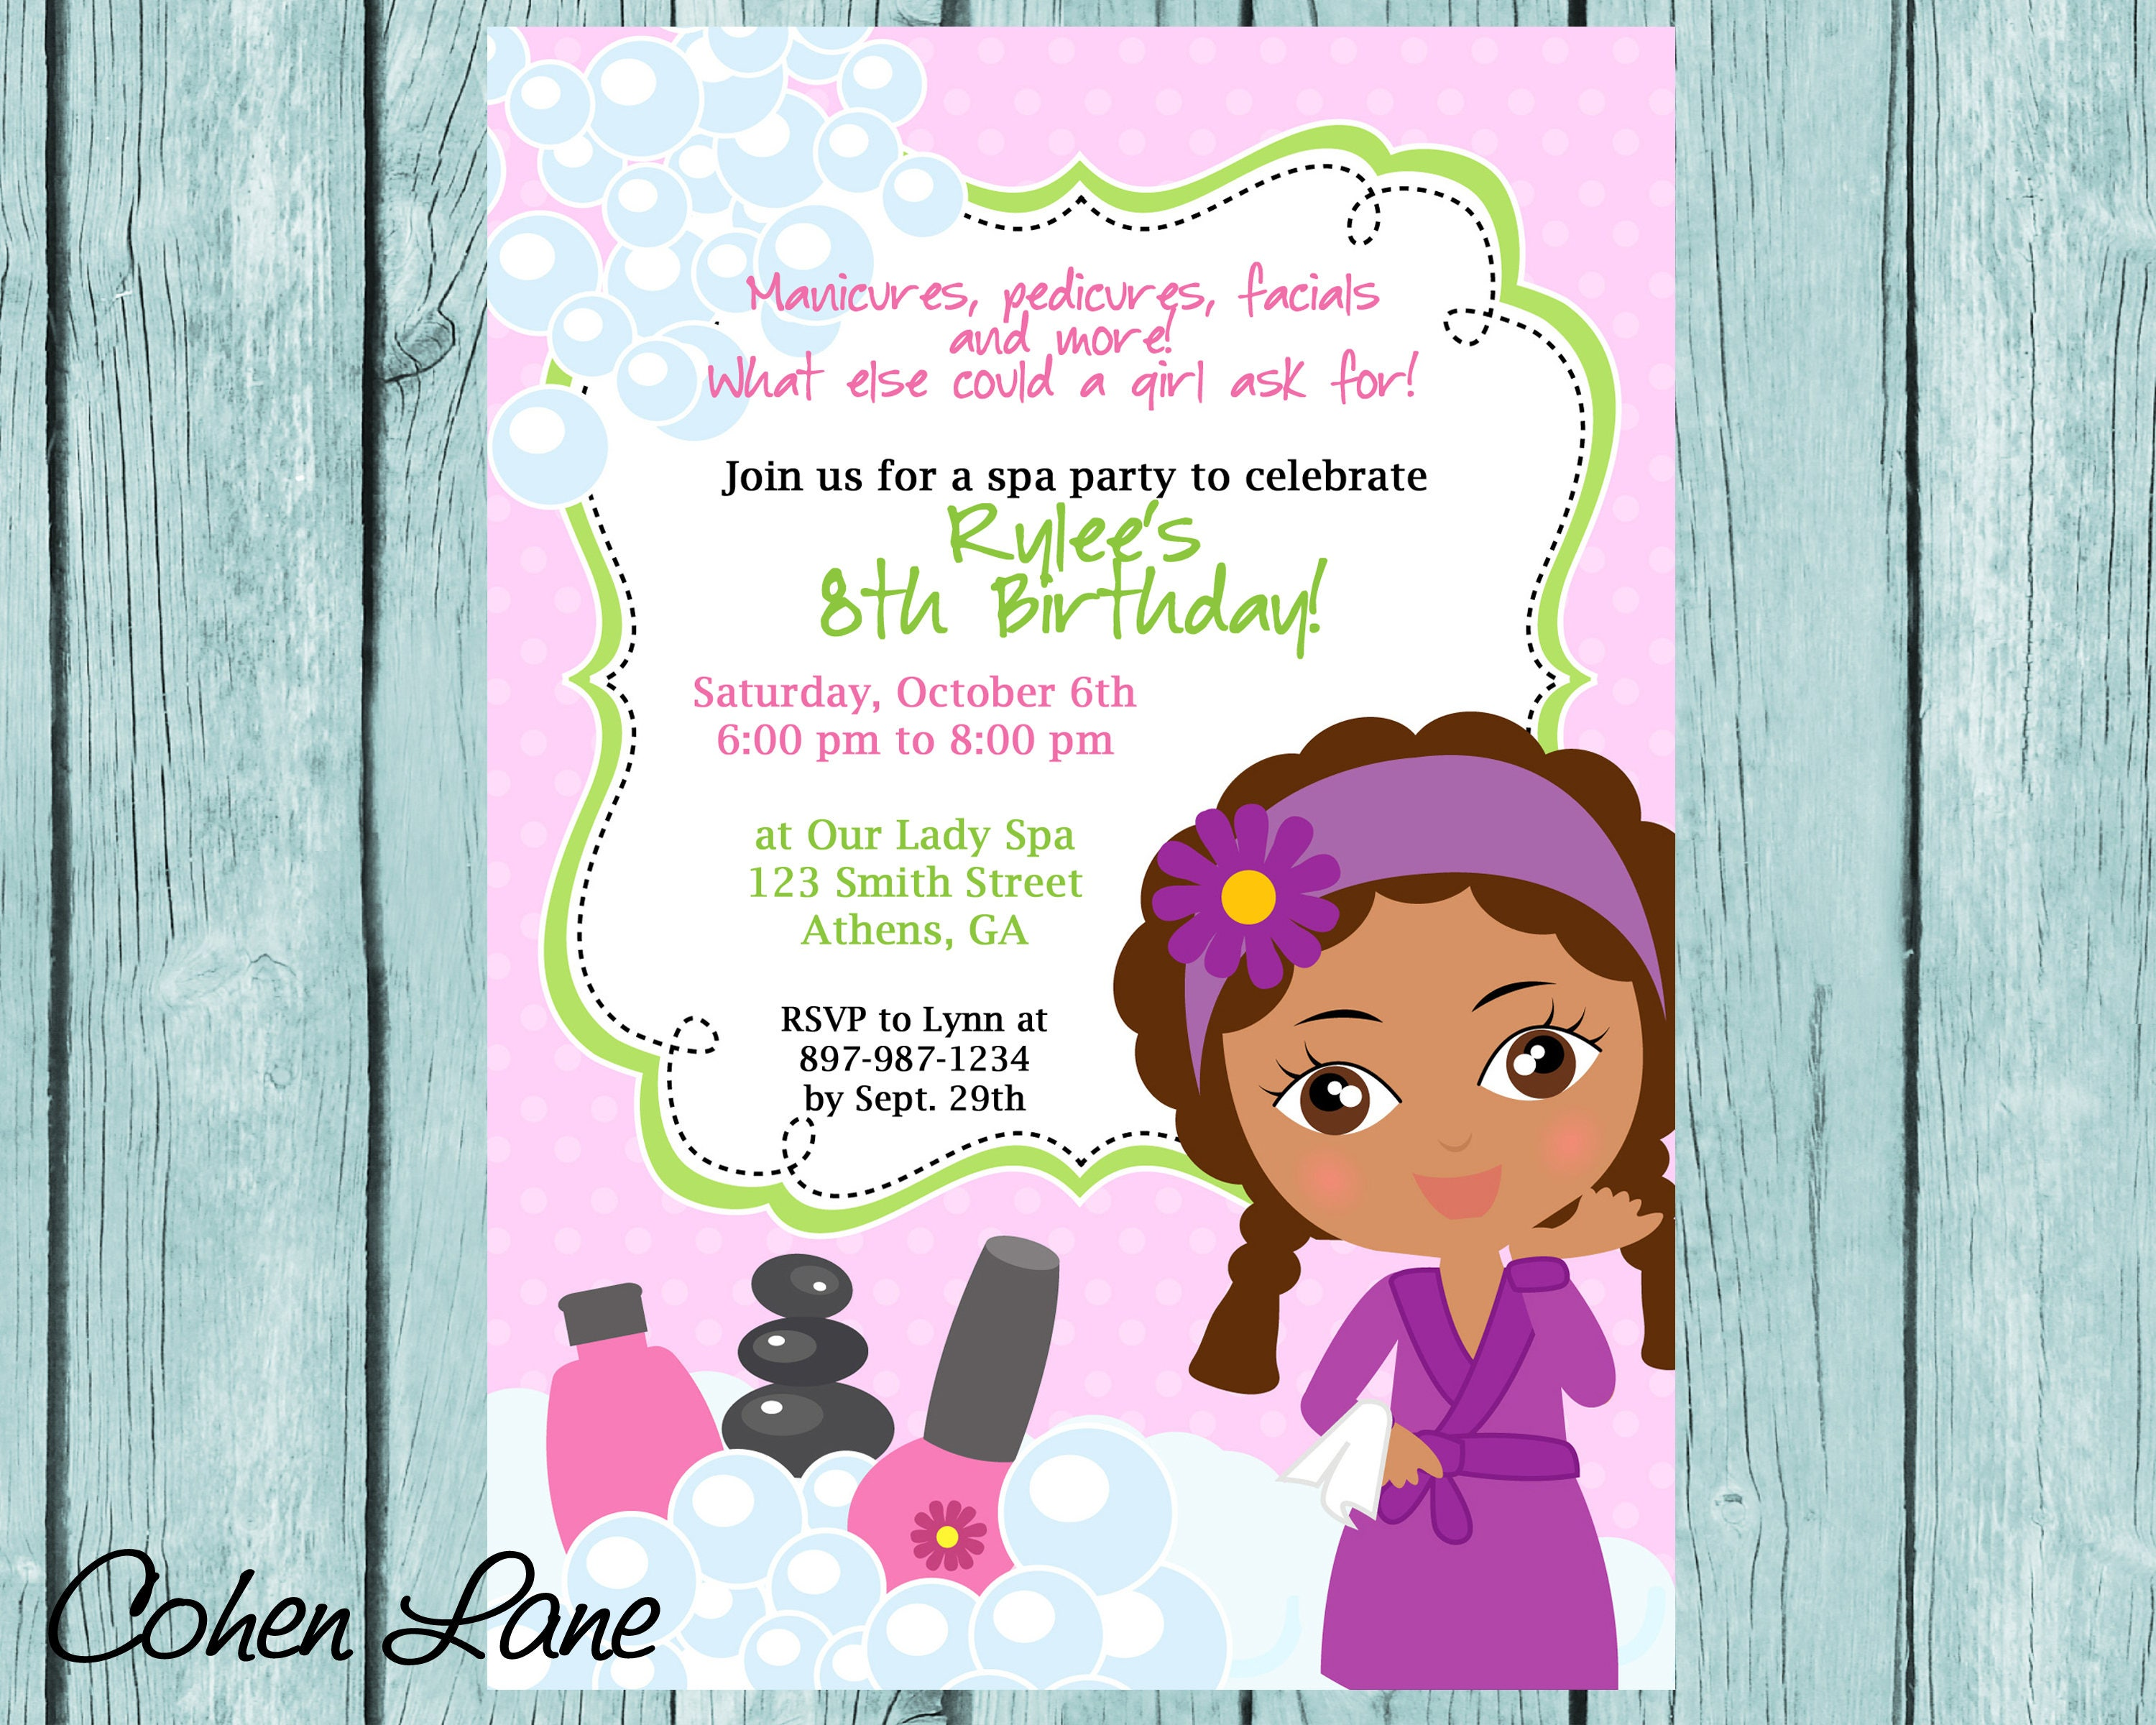 DIY Sassy Spa Party invitation. African American Little Girl